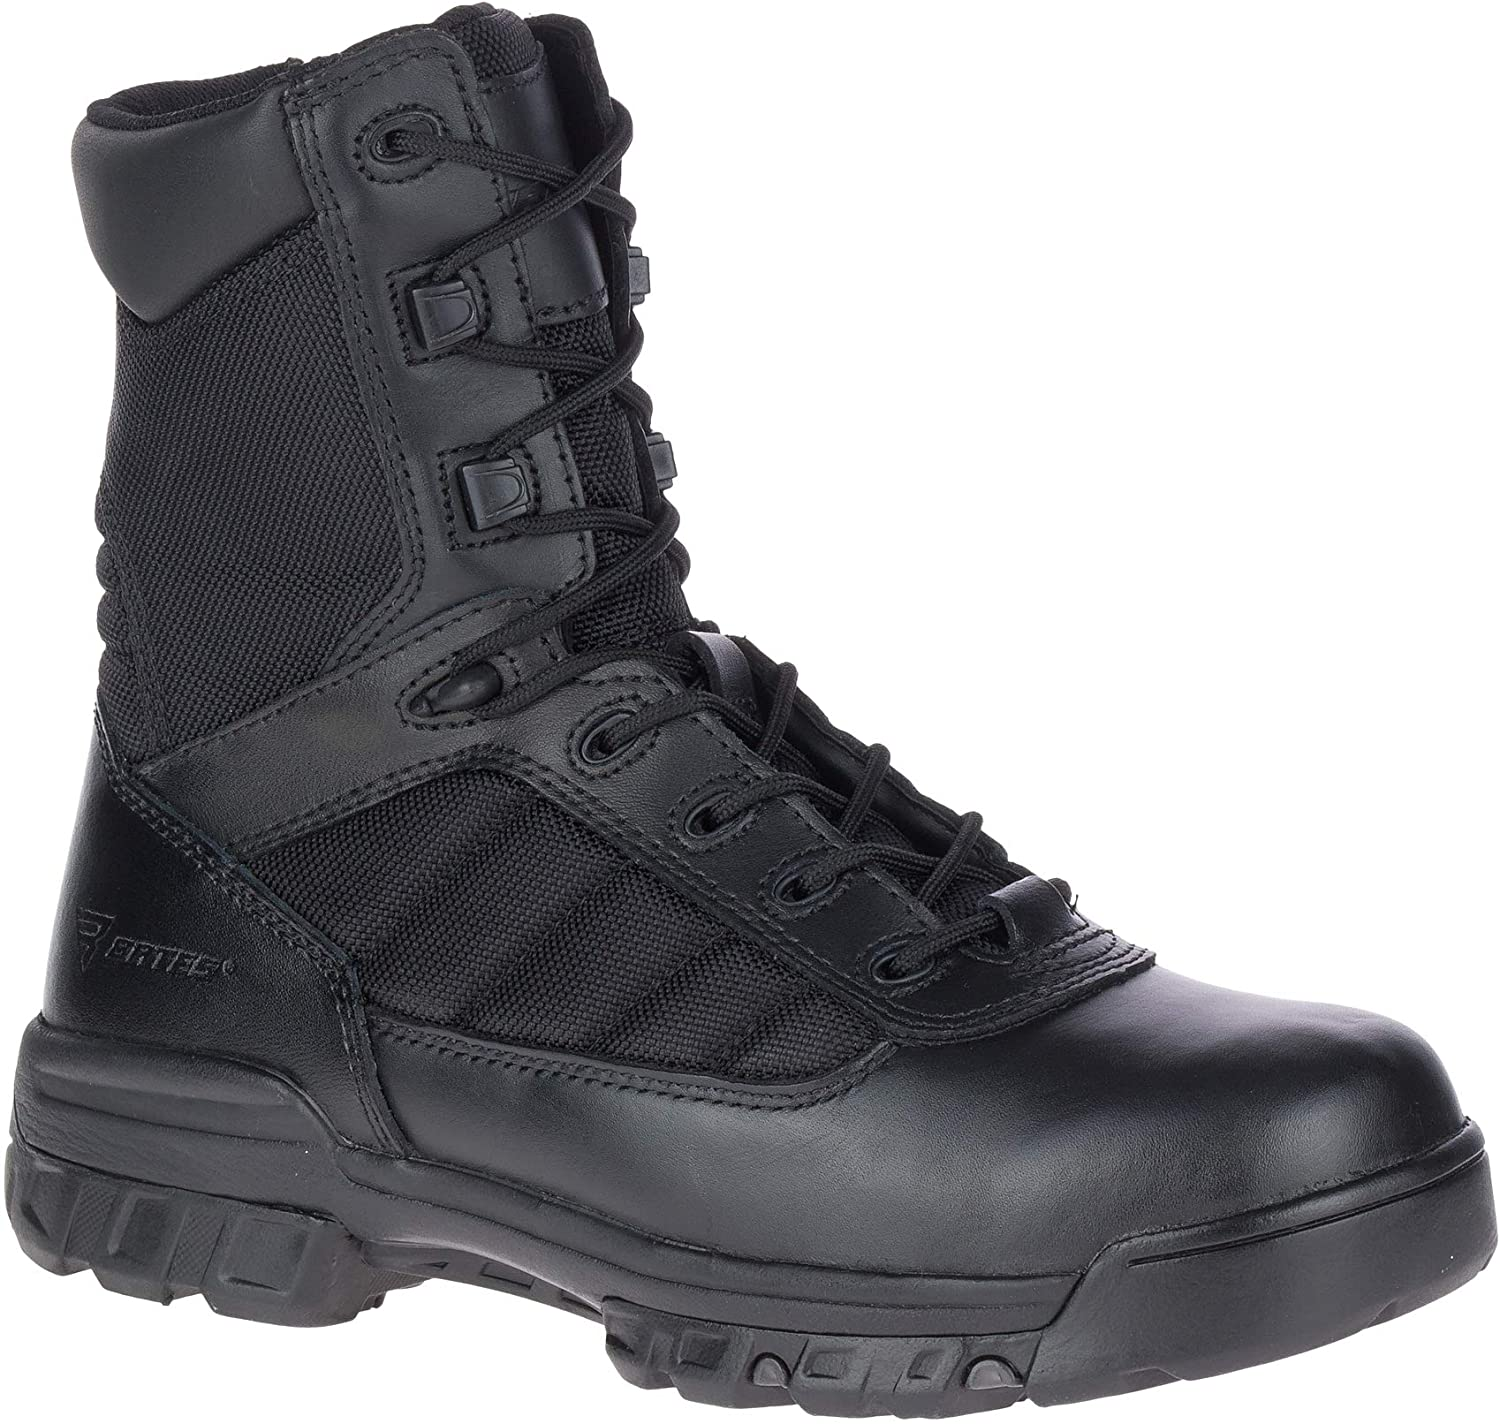 Bates Men's Ultralite Tactical EMS Boots are our best choice!